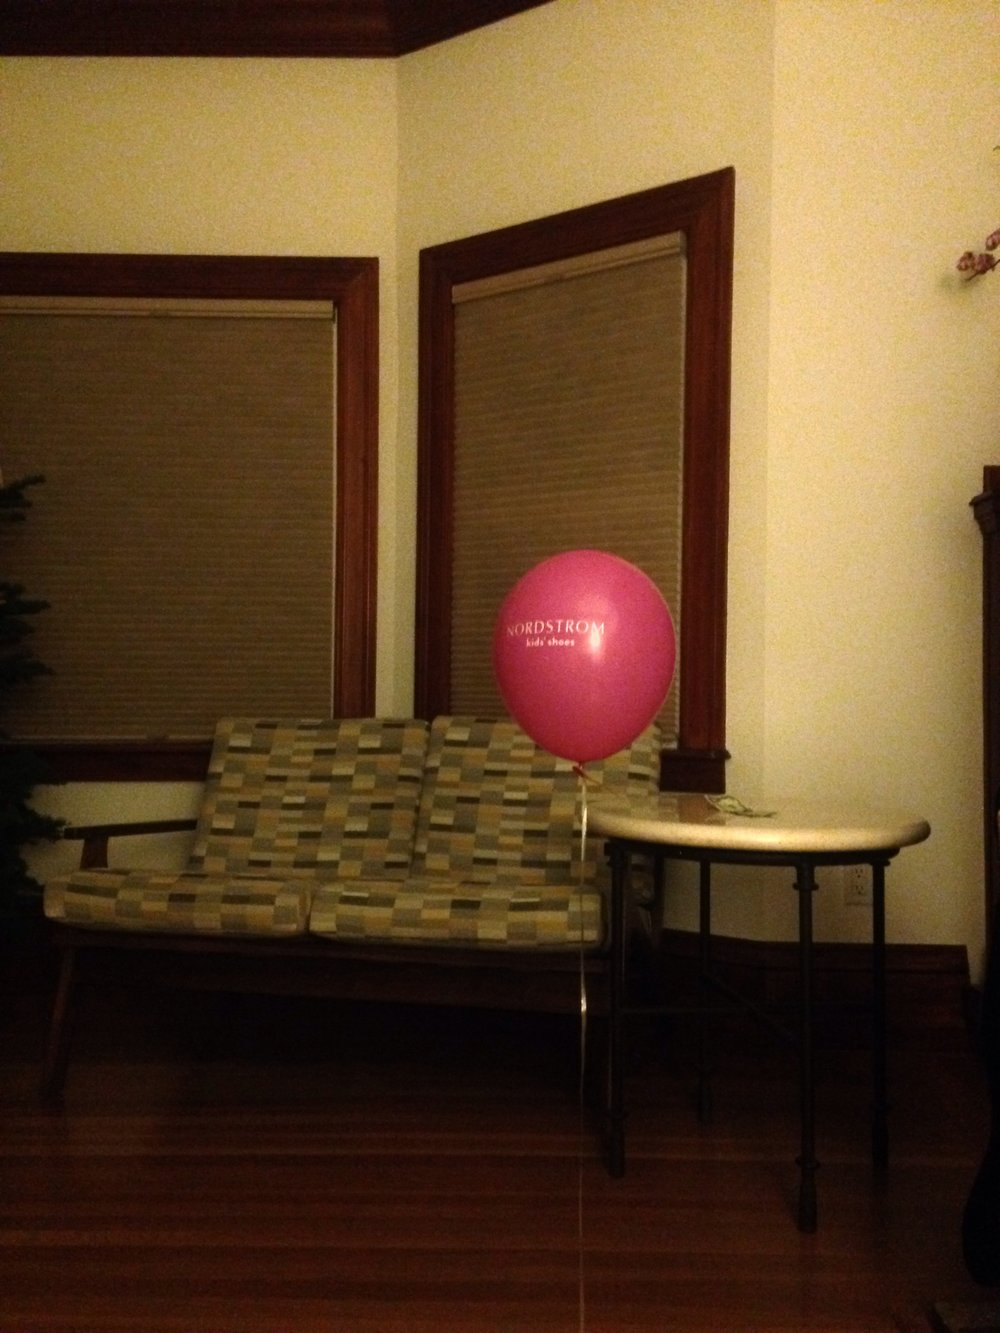 Complimentary baloon in living room,  San Francisco, December 29, 2016.